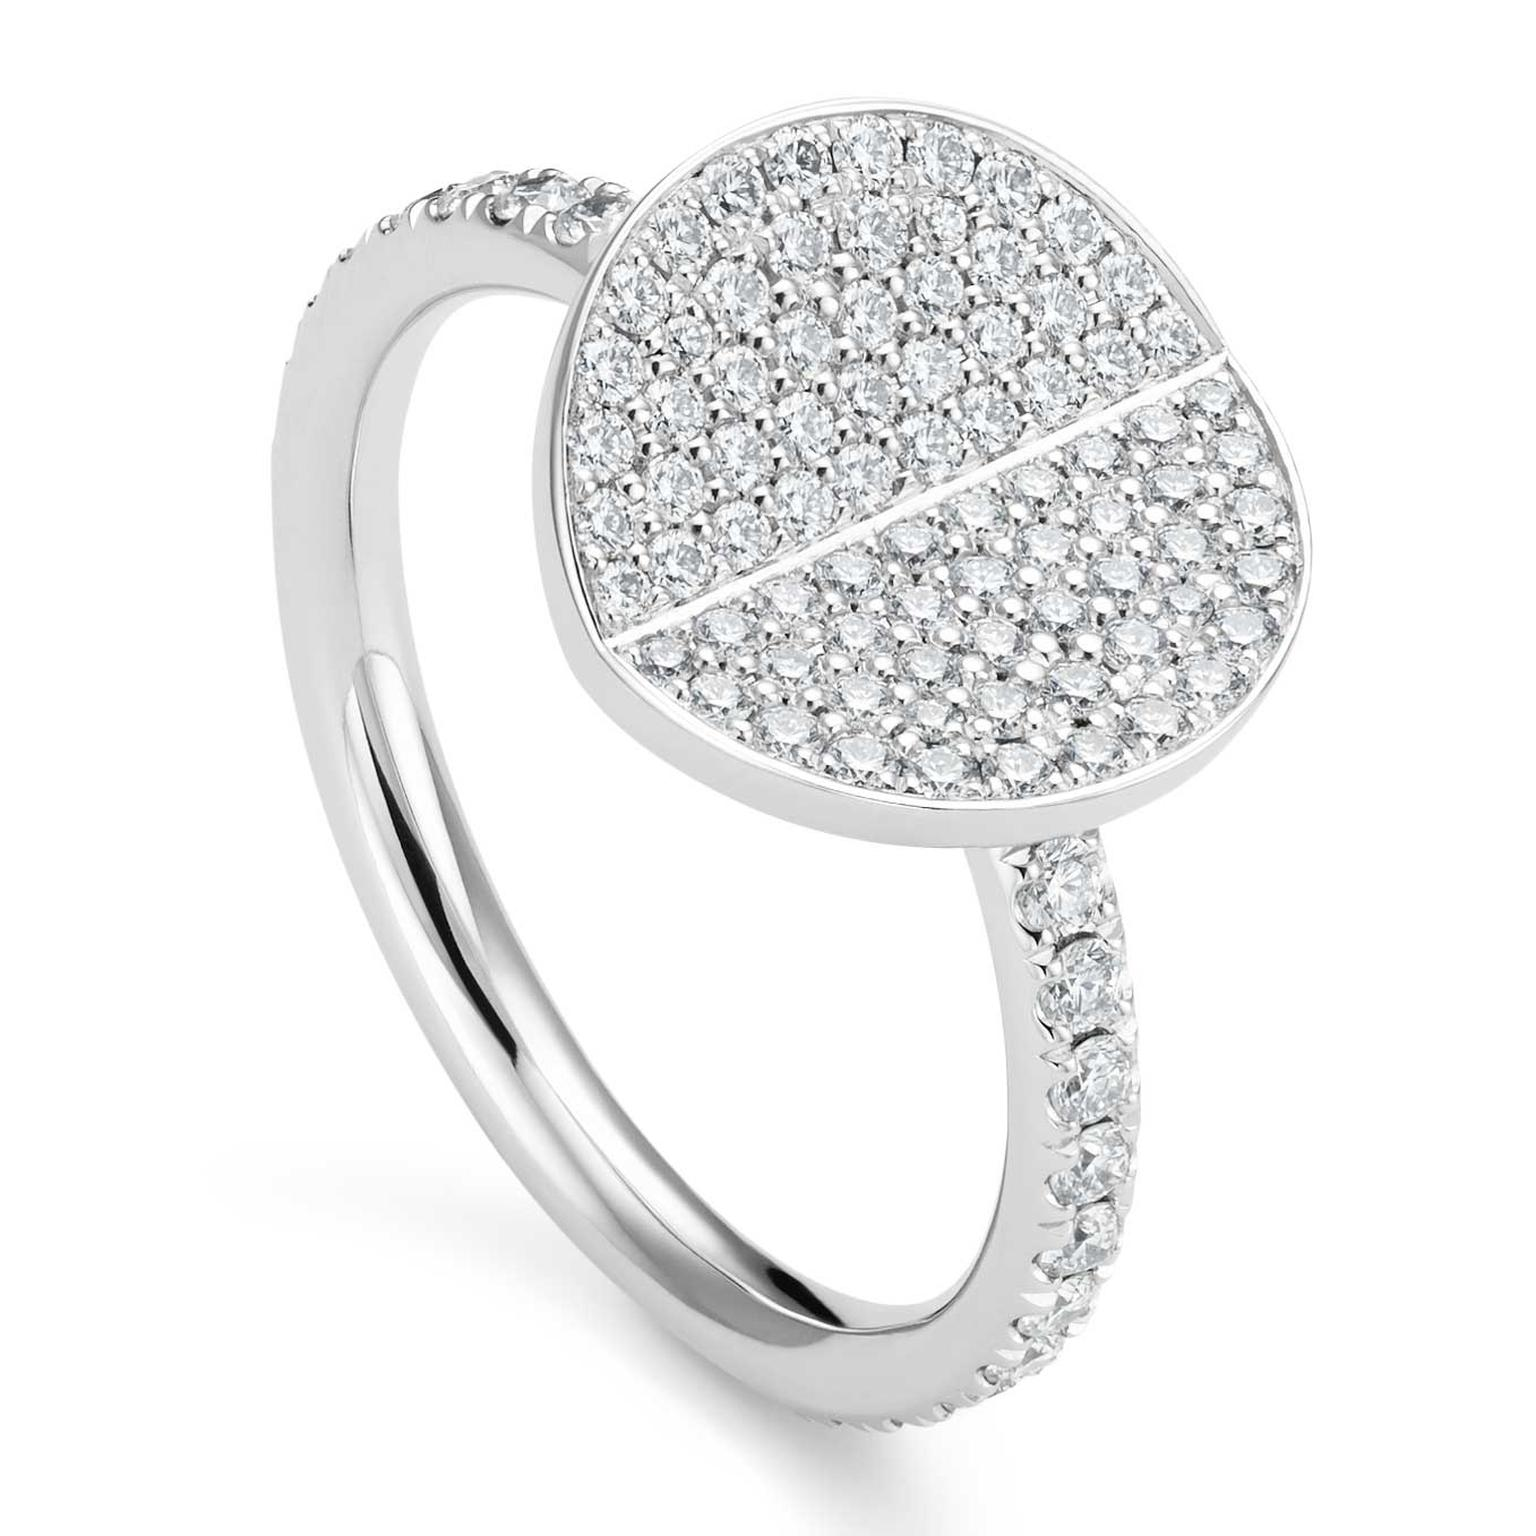 Bucherer B Dimension ring with diamonds in white gold Price £2600